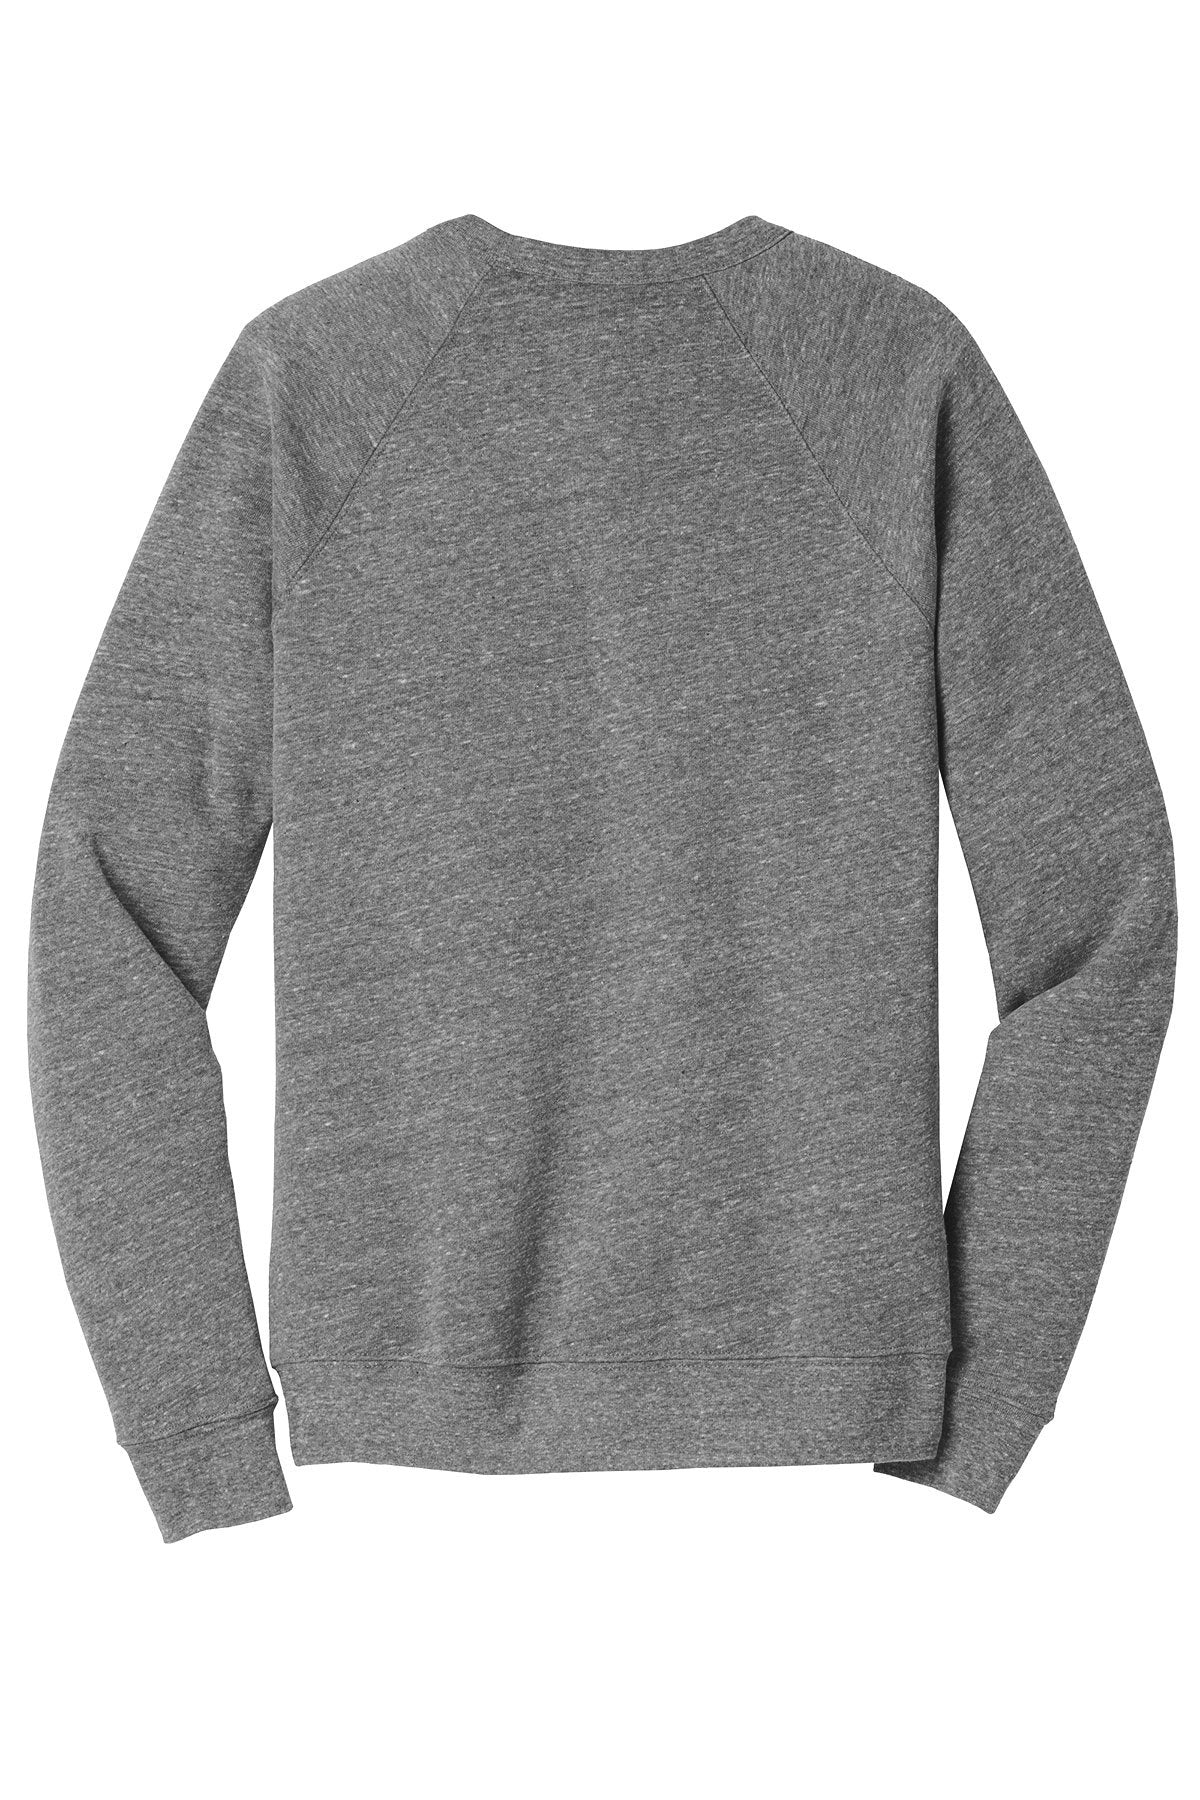 Running On Diet Coke And Dry Shampoo Women's Cozy Fleece Longsleeves Sweater Heather Grey FRONT